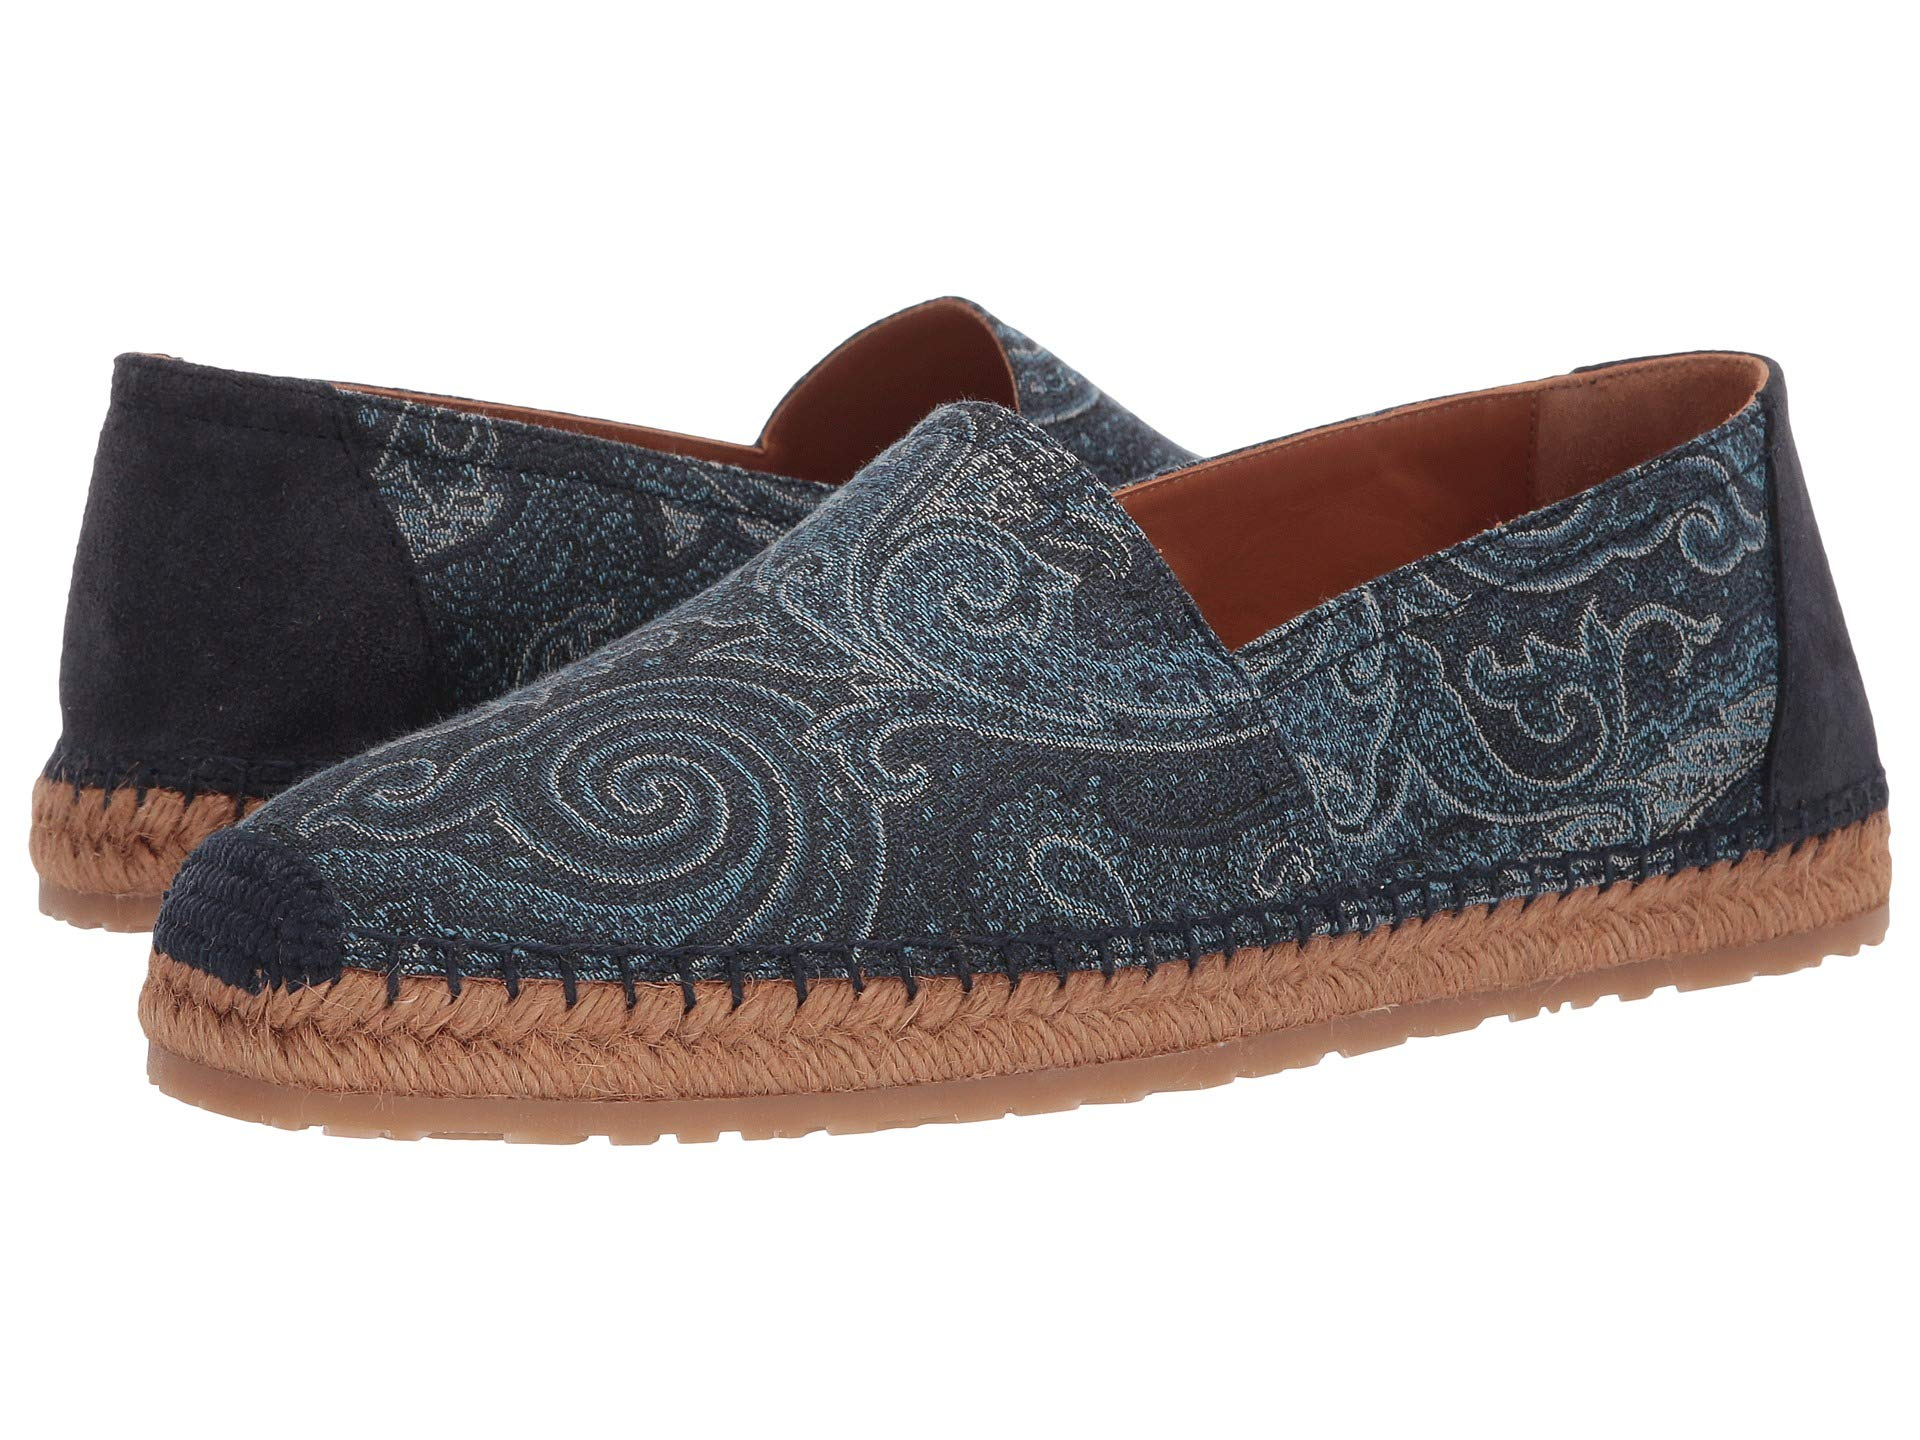 b9c5894865130 Etro Paisley Loafer at Luxury.Zappos.com